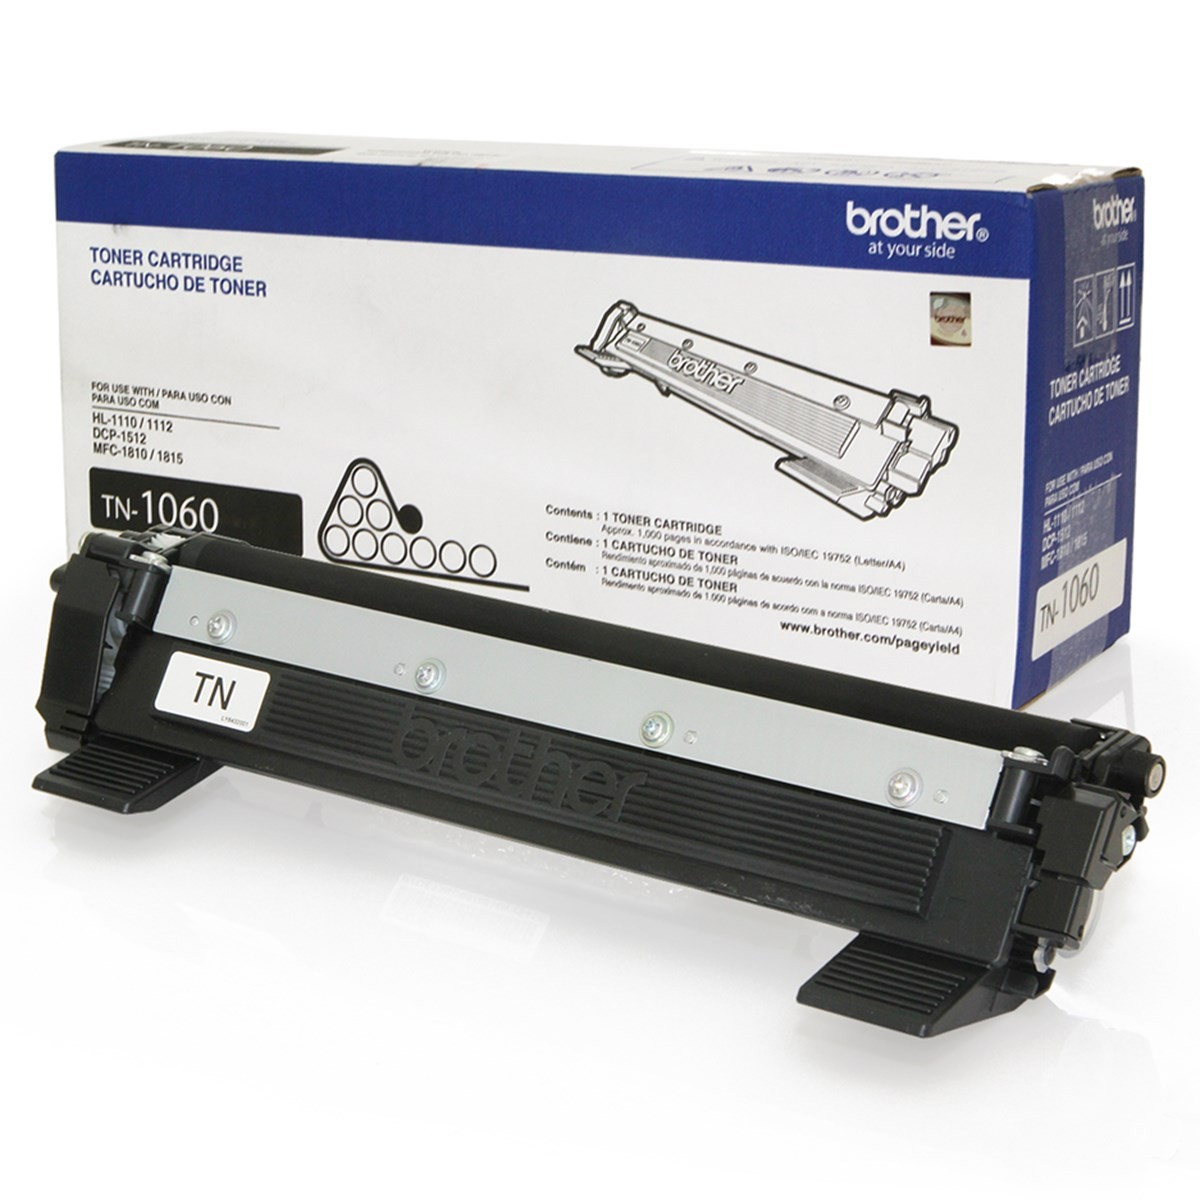 TN1060 - CARTUCHO DE TONER PRETO ORIGINAL PARA BROTHER DCP-1602 / DCP-1512 E SERIES